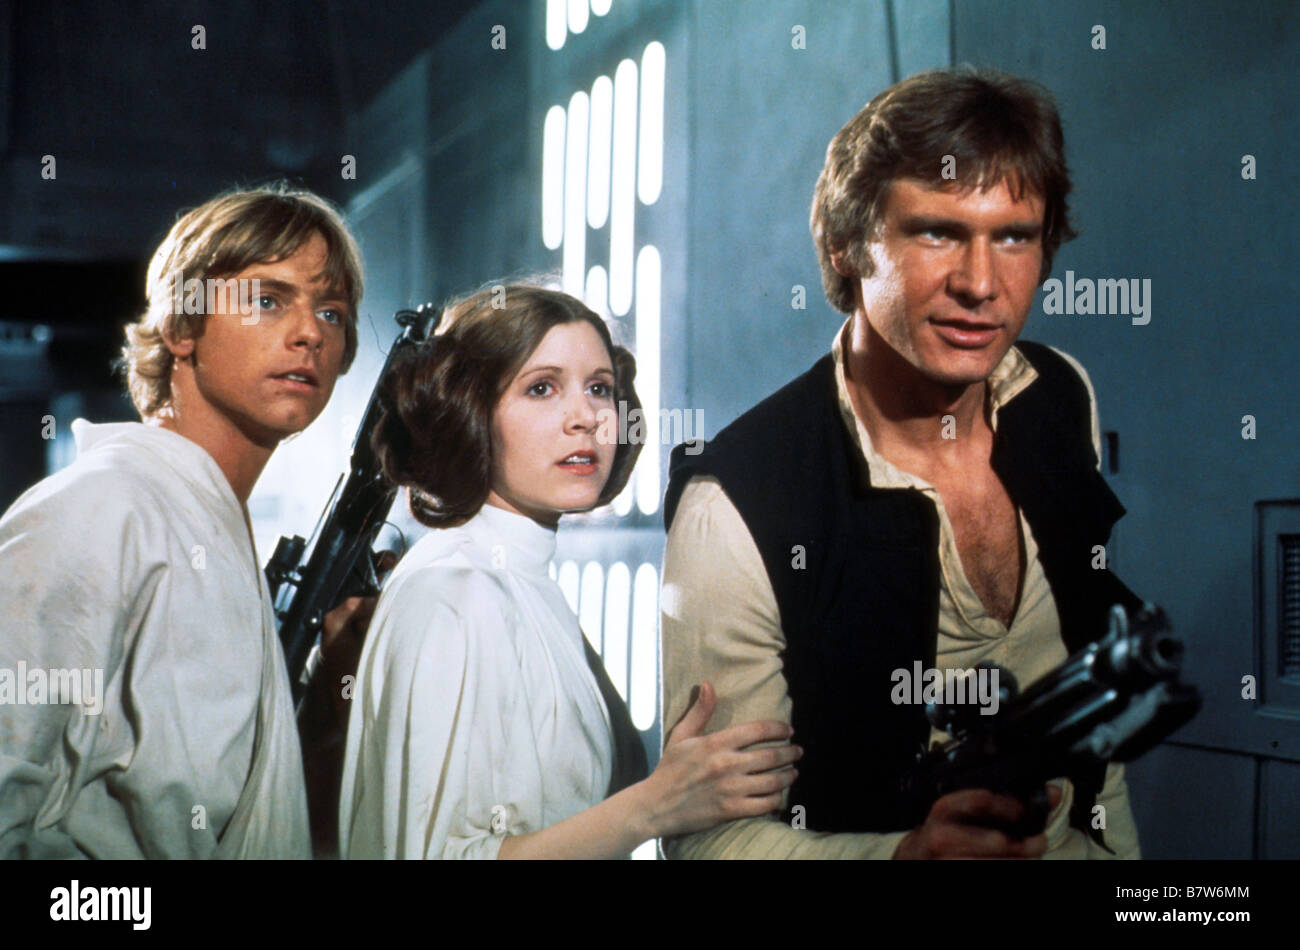 Star Wars: Episode IV - A New Hope Year: 1977 USA Mark Hamill, Carrie Fisher, Harrison Ford  Director: George Lucas - Stock Image